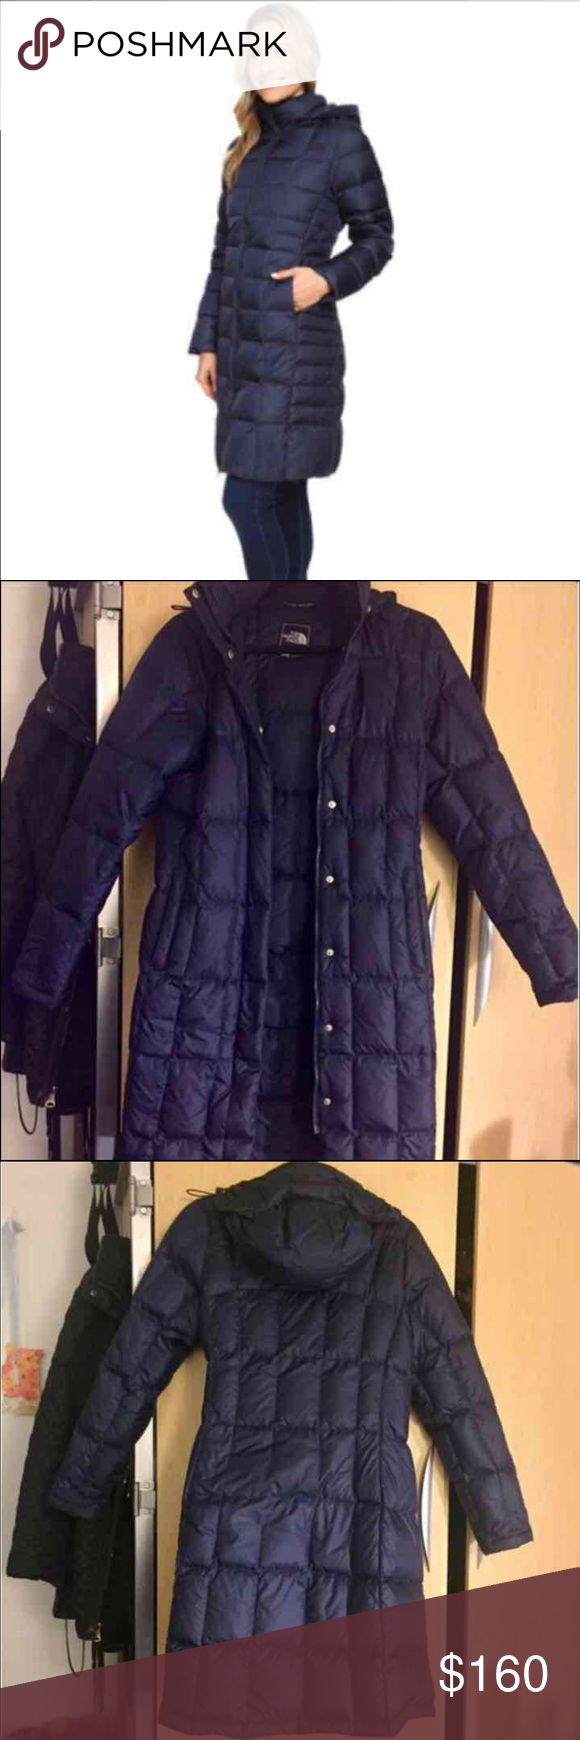 Northface navy parka Size Small. Down fill 550 goose down. Excellent used condition. North Face Jackets & Coats Puffers